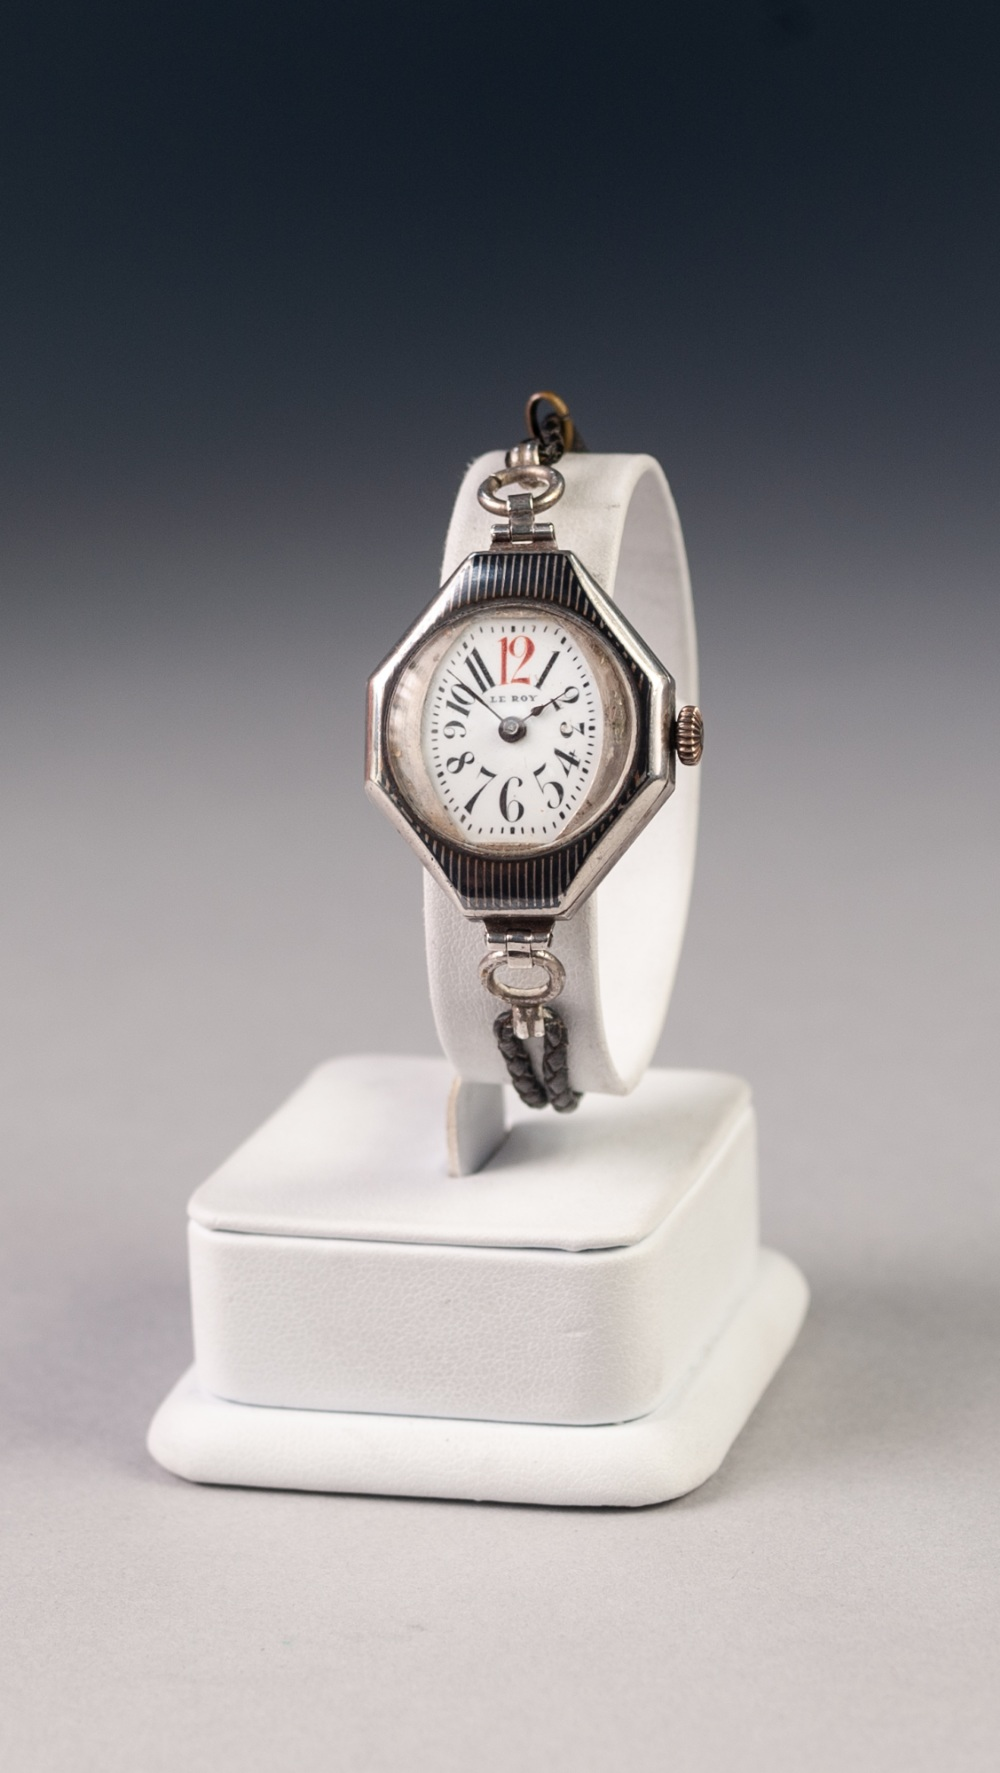 Lot 23 - LADY'S LE ROY, PARIS, WRIST WATCH, with mechanical Swiss movement, No. 990, oval Arabic dial in